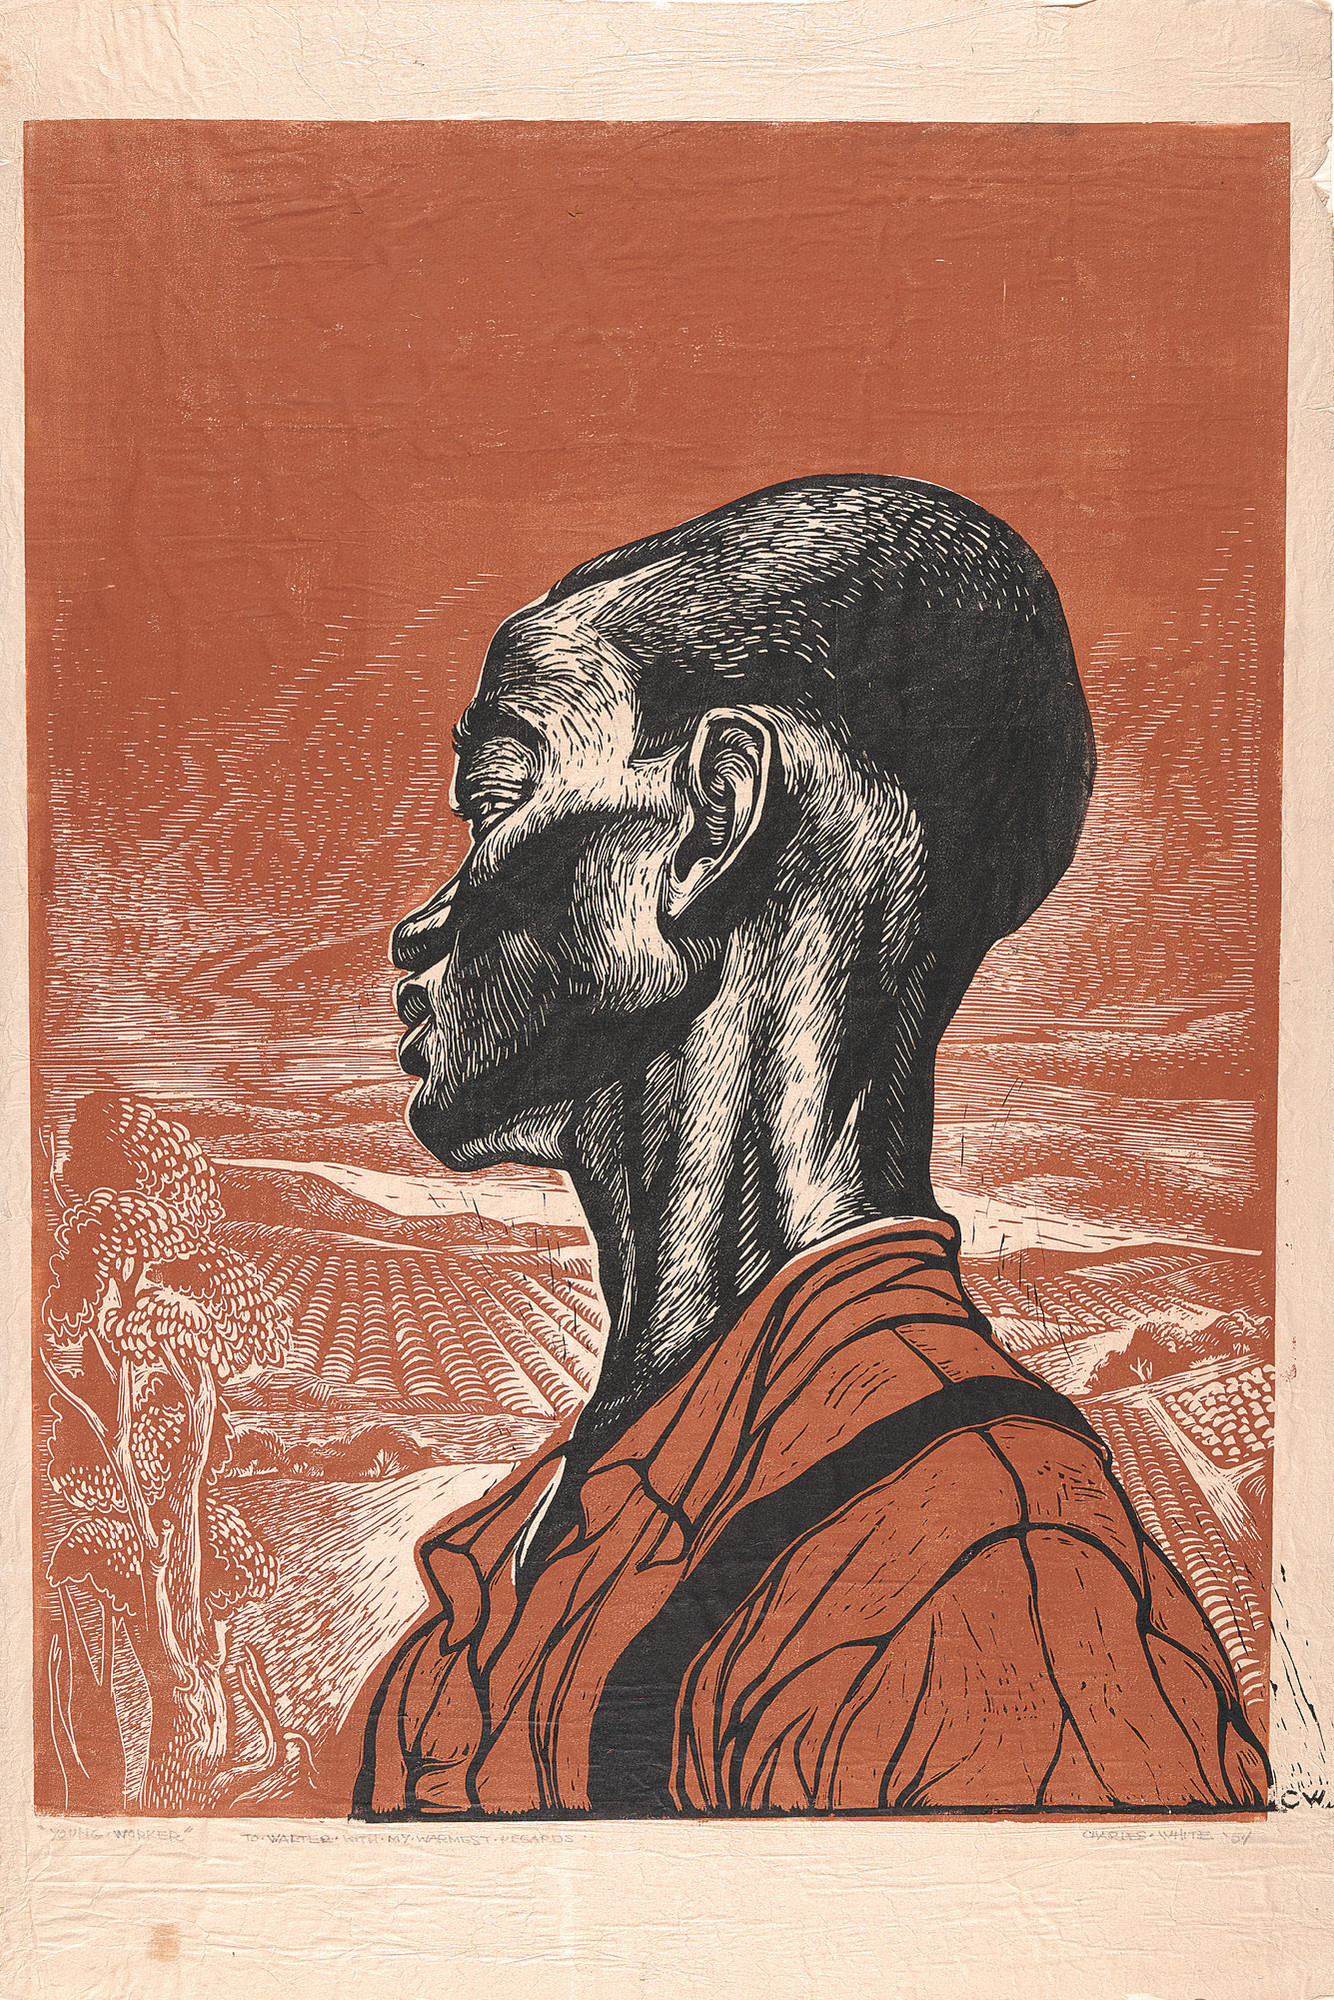 Charles White. Young Farmer. 1953.